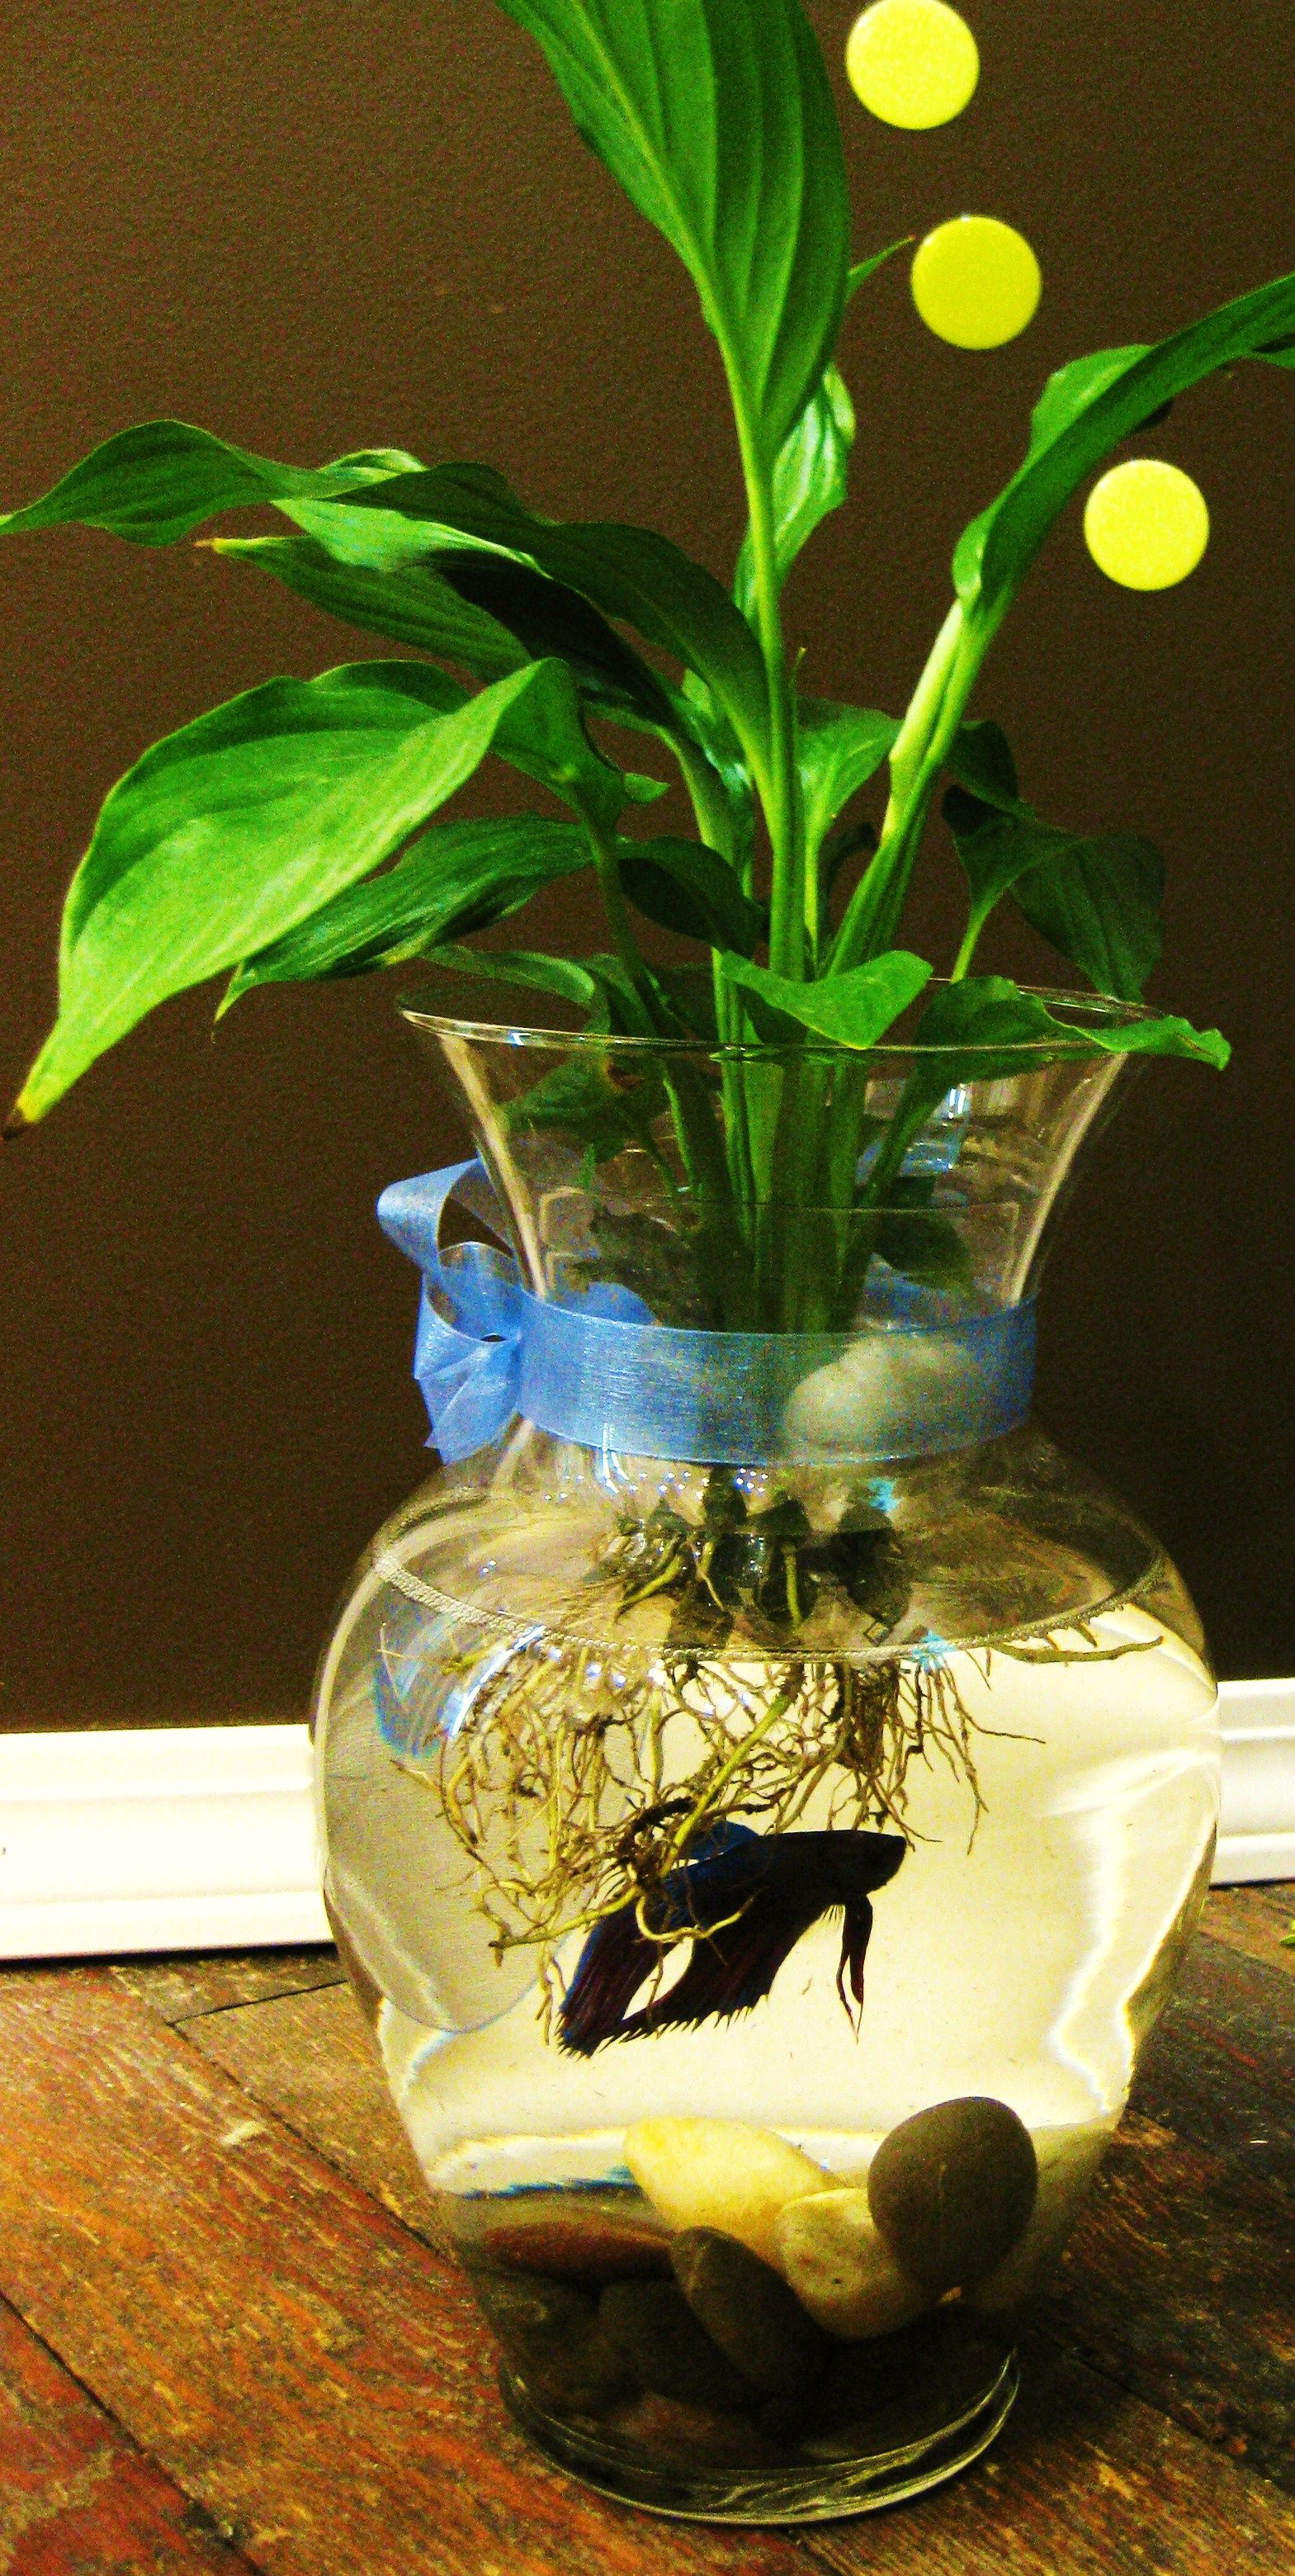 Fighting fish bowls with peace lily or lucky bamboo for Growing plants with fish